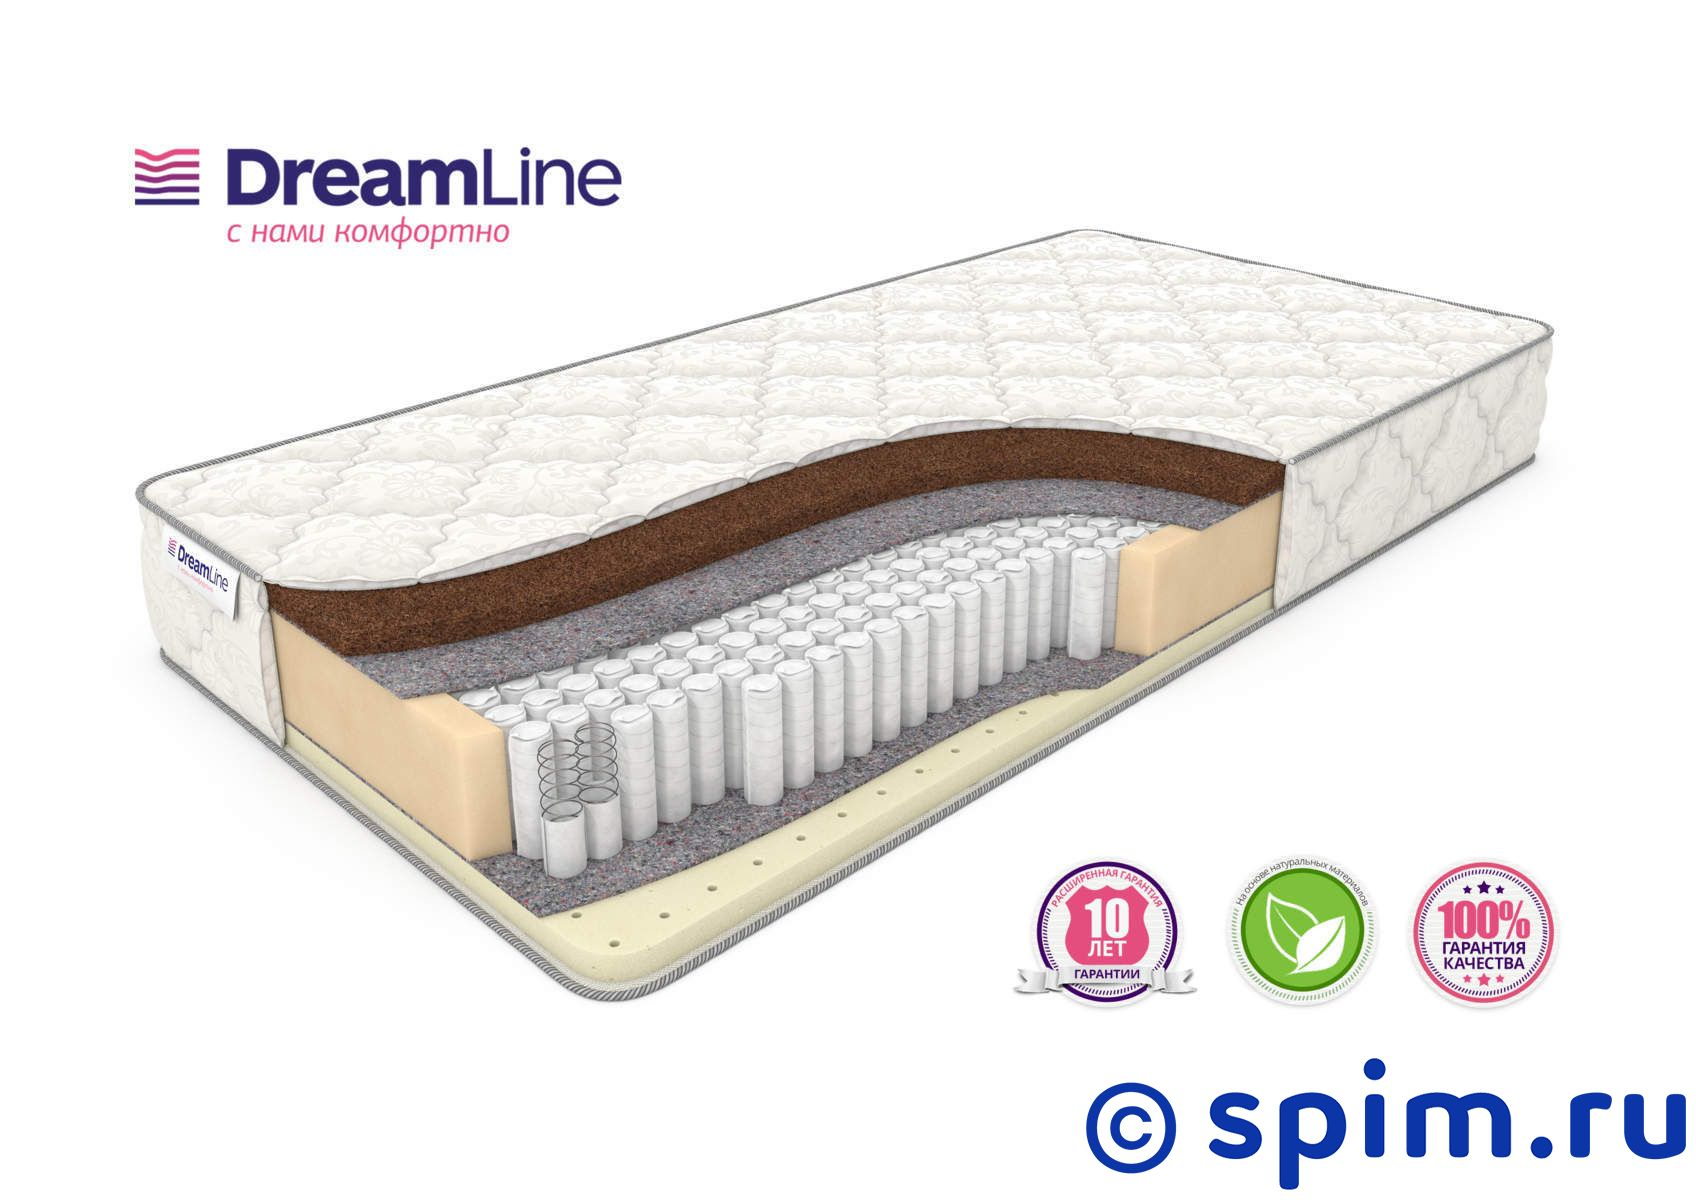 Матрас DreamLine SleepDream S1000 150х190 см